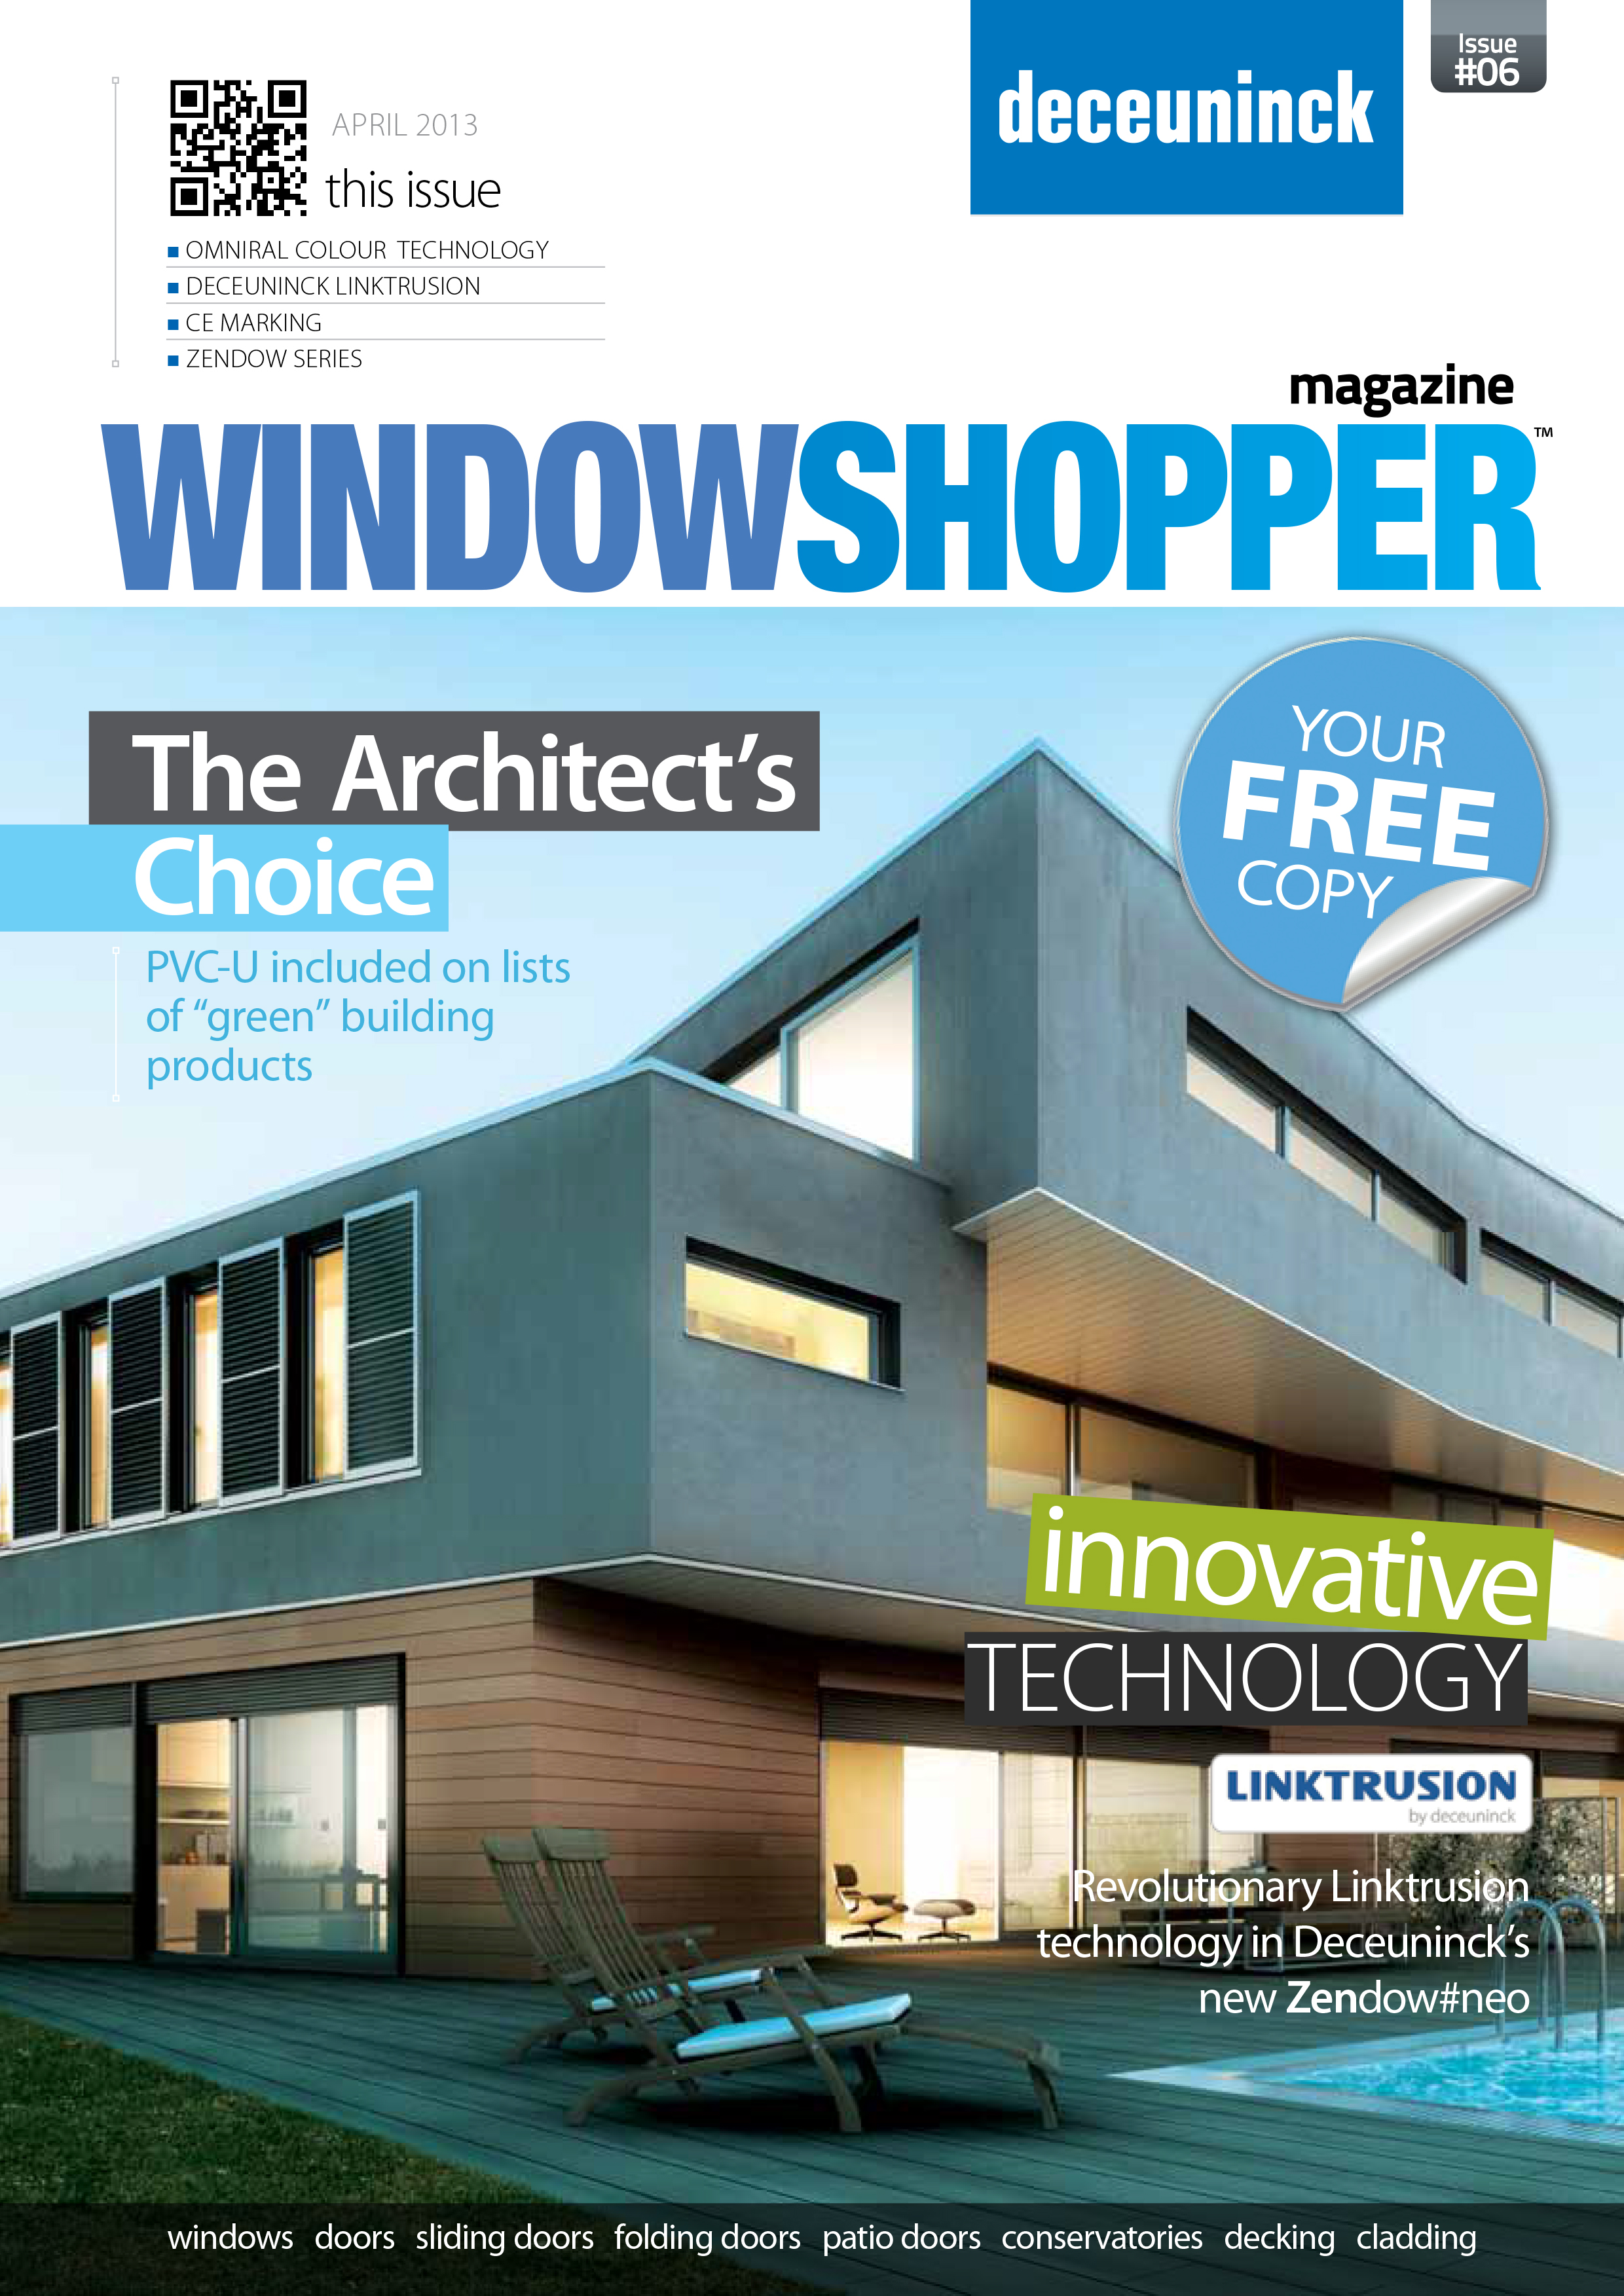 Latest edition of Deceuninck's WindowShopper out now!